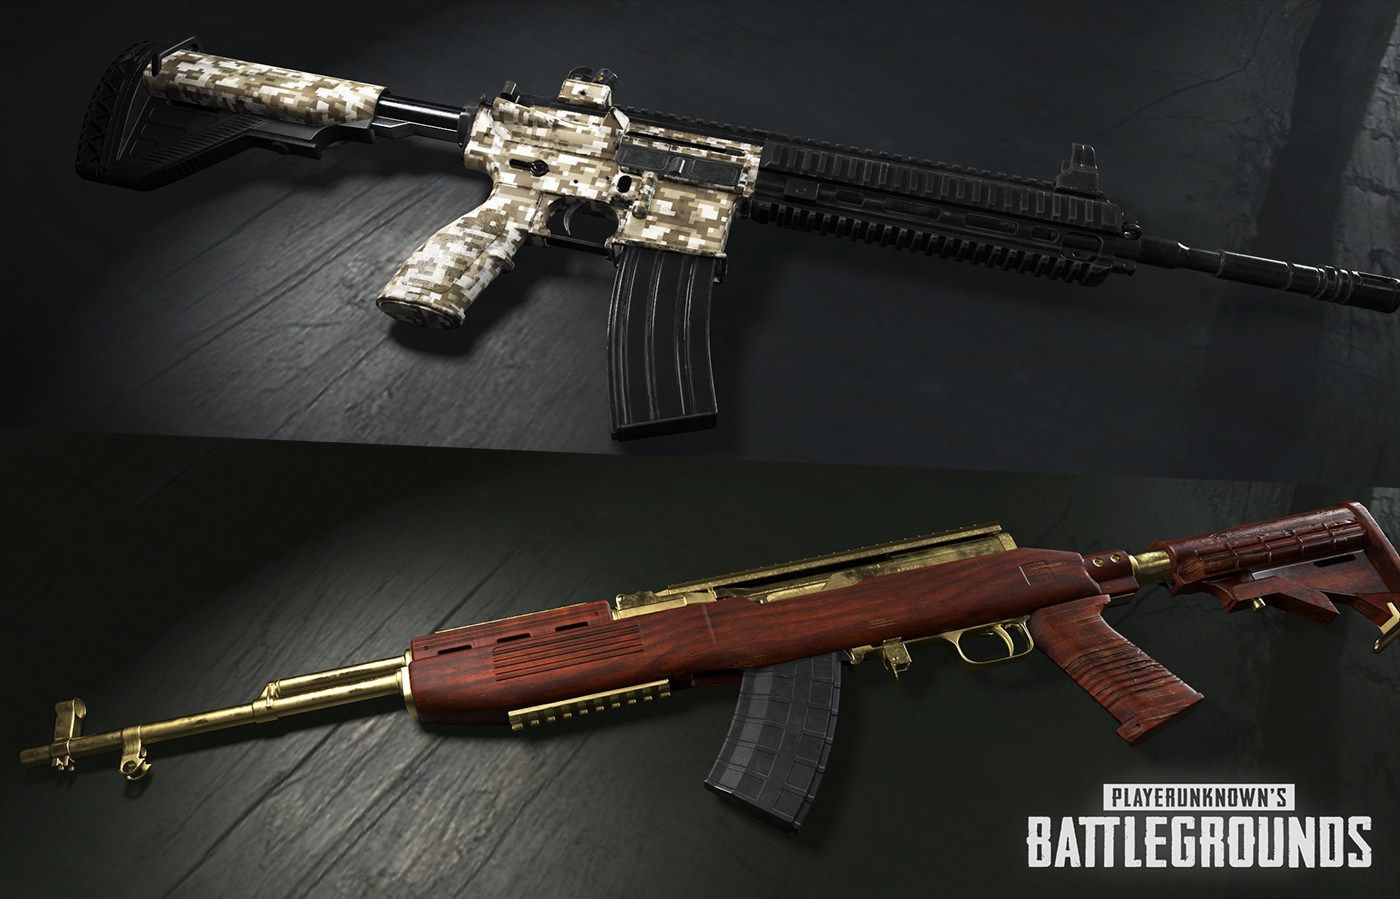 Pubg Mulls Region Locked Servers Adds New Weapon Skins And Crates